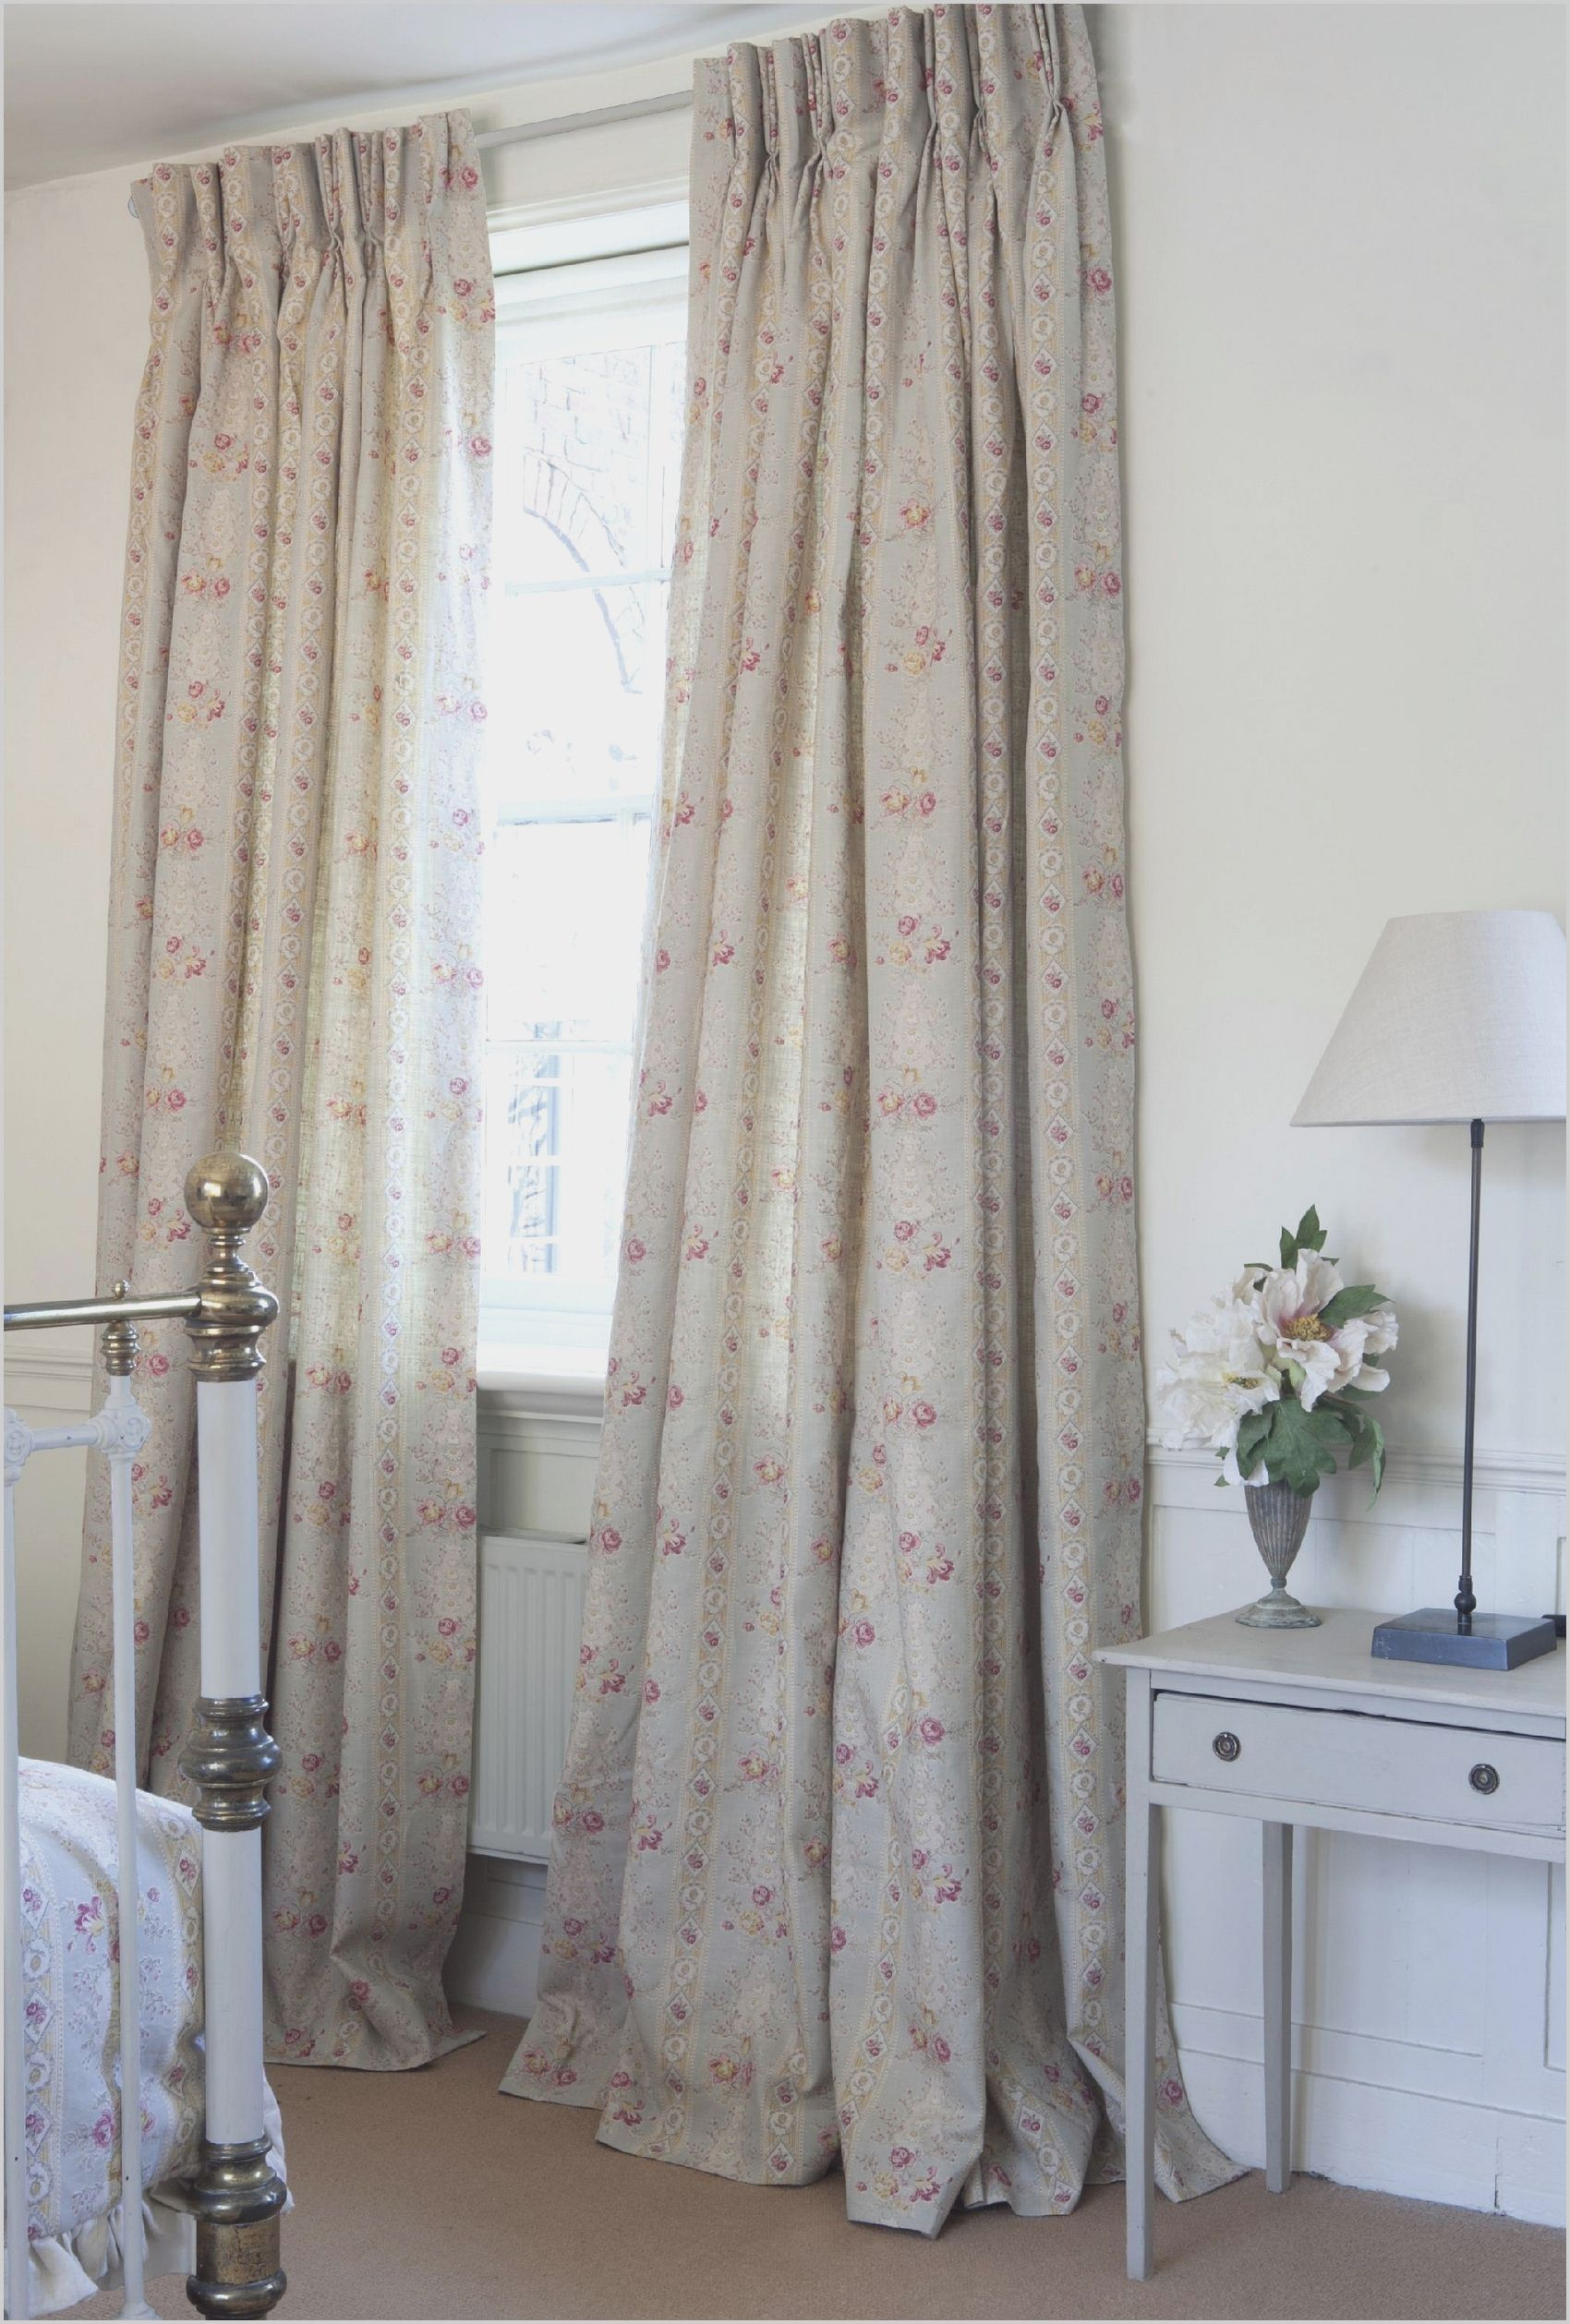 Country Bedroom Curtain Ideas On Pinterest In 2020 Cur